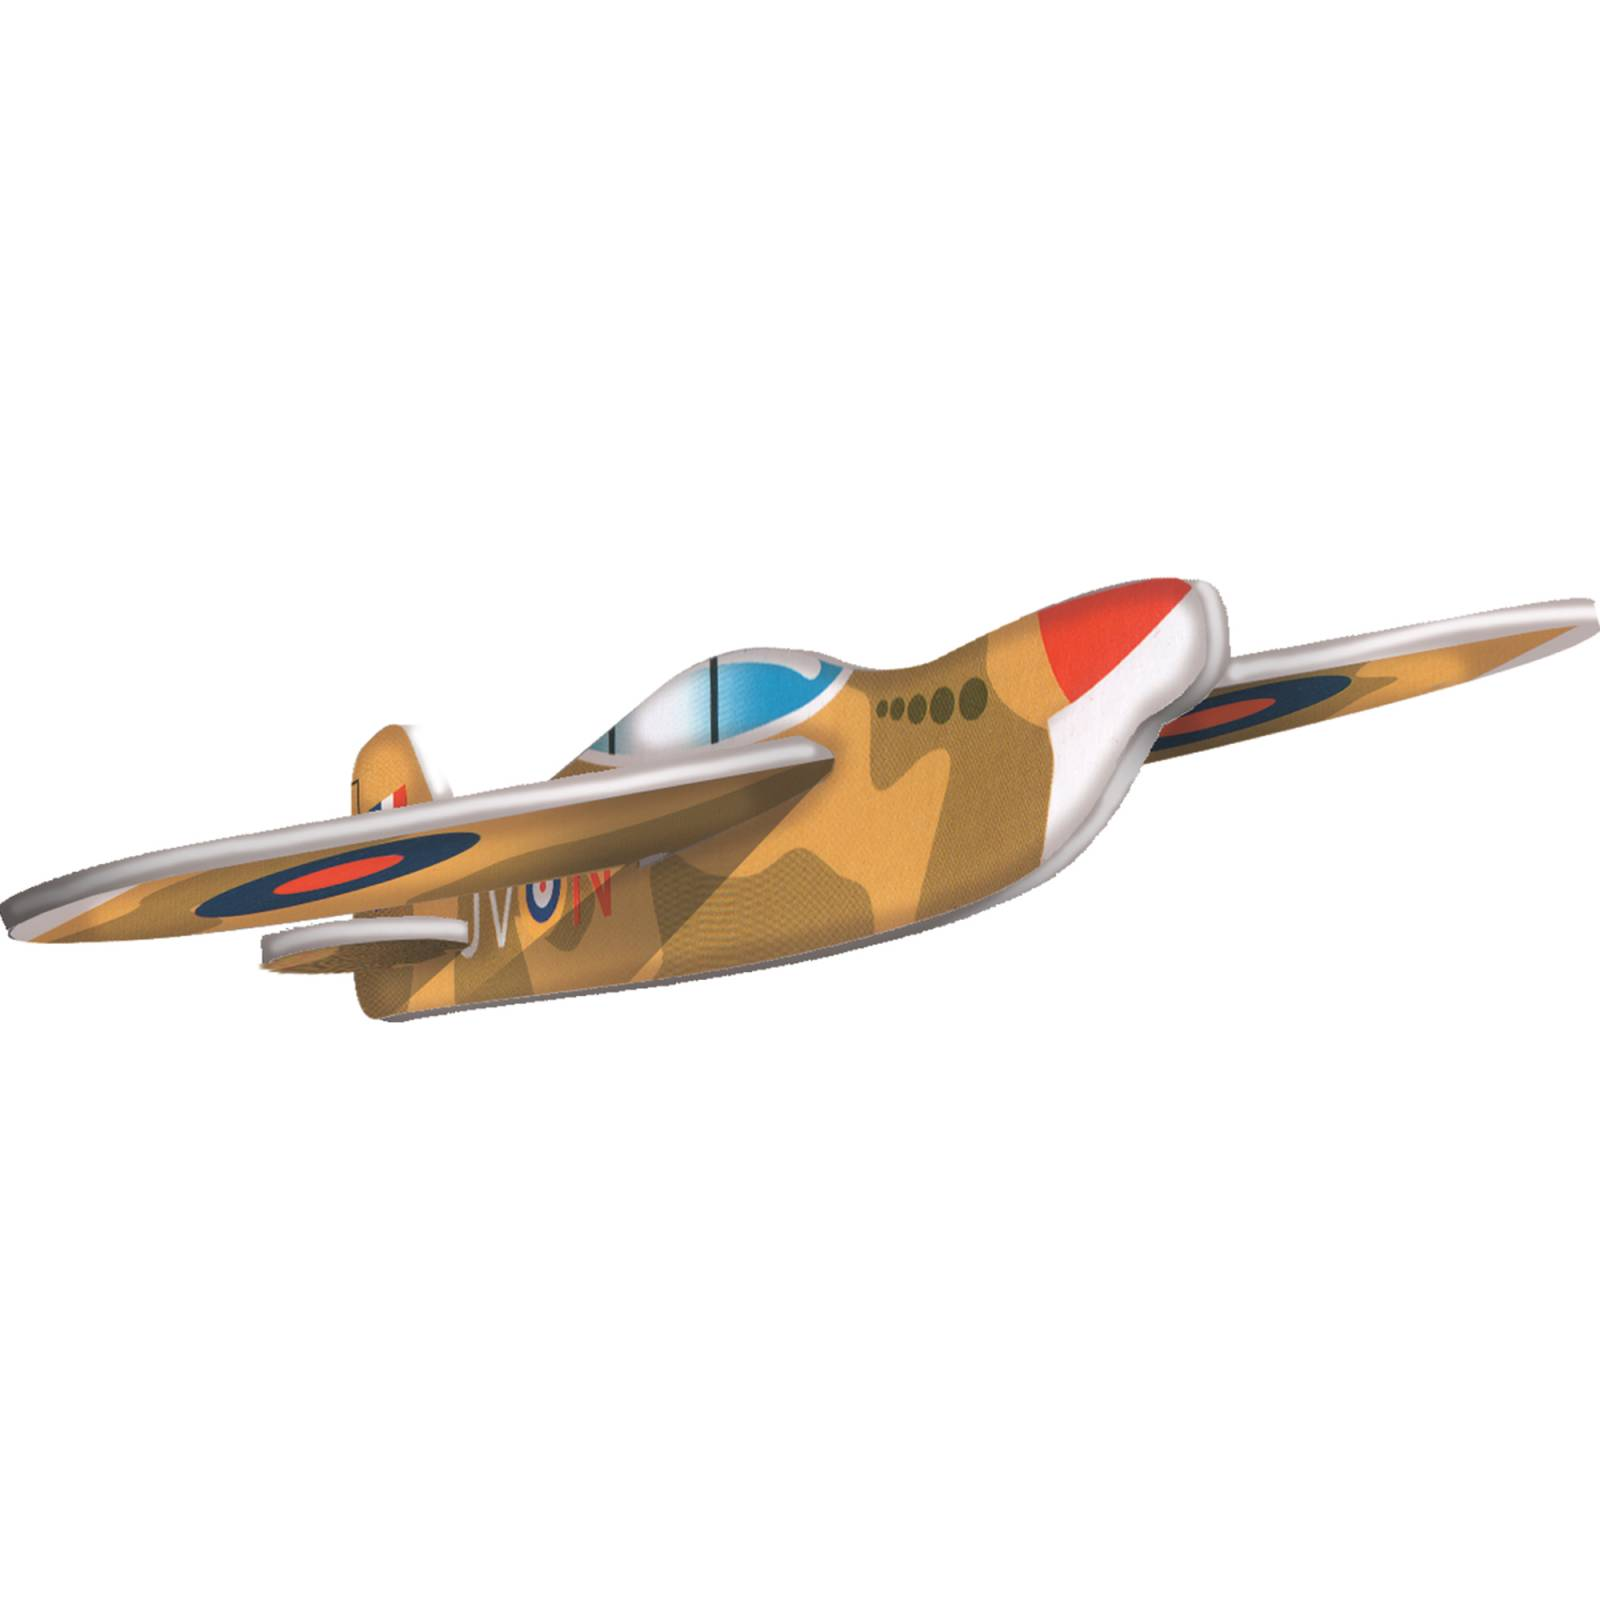 Racing Planes To Make and Fly thumbnails